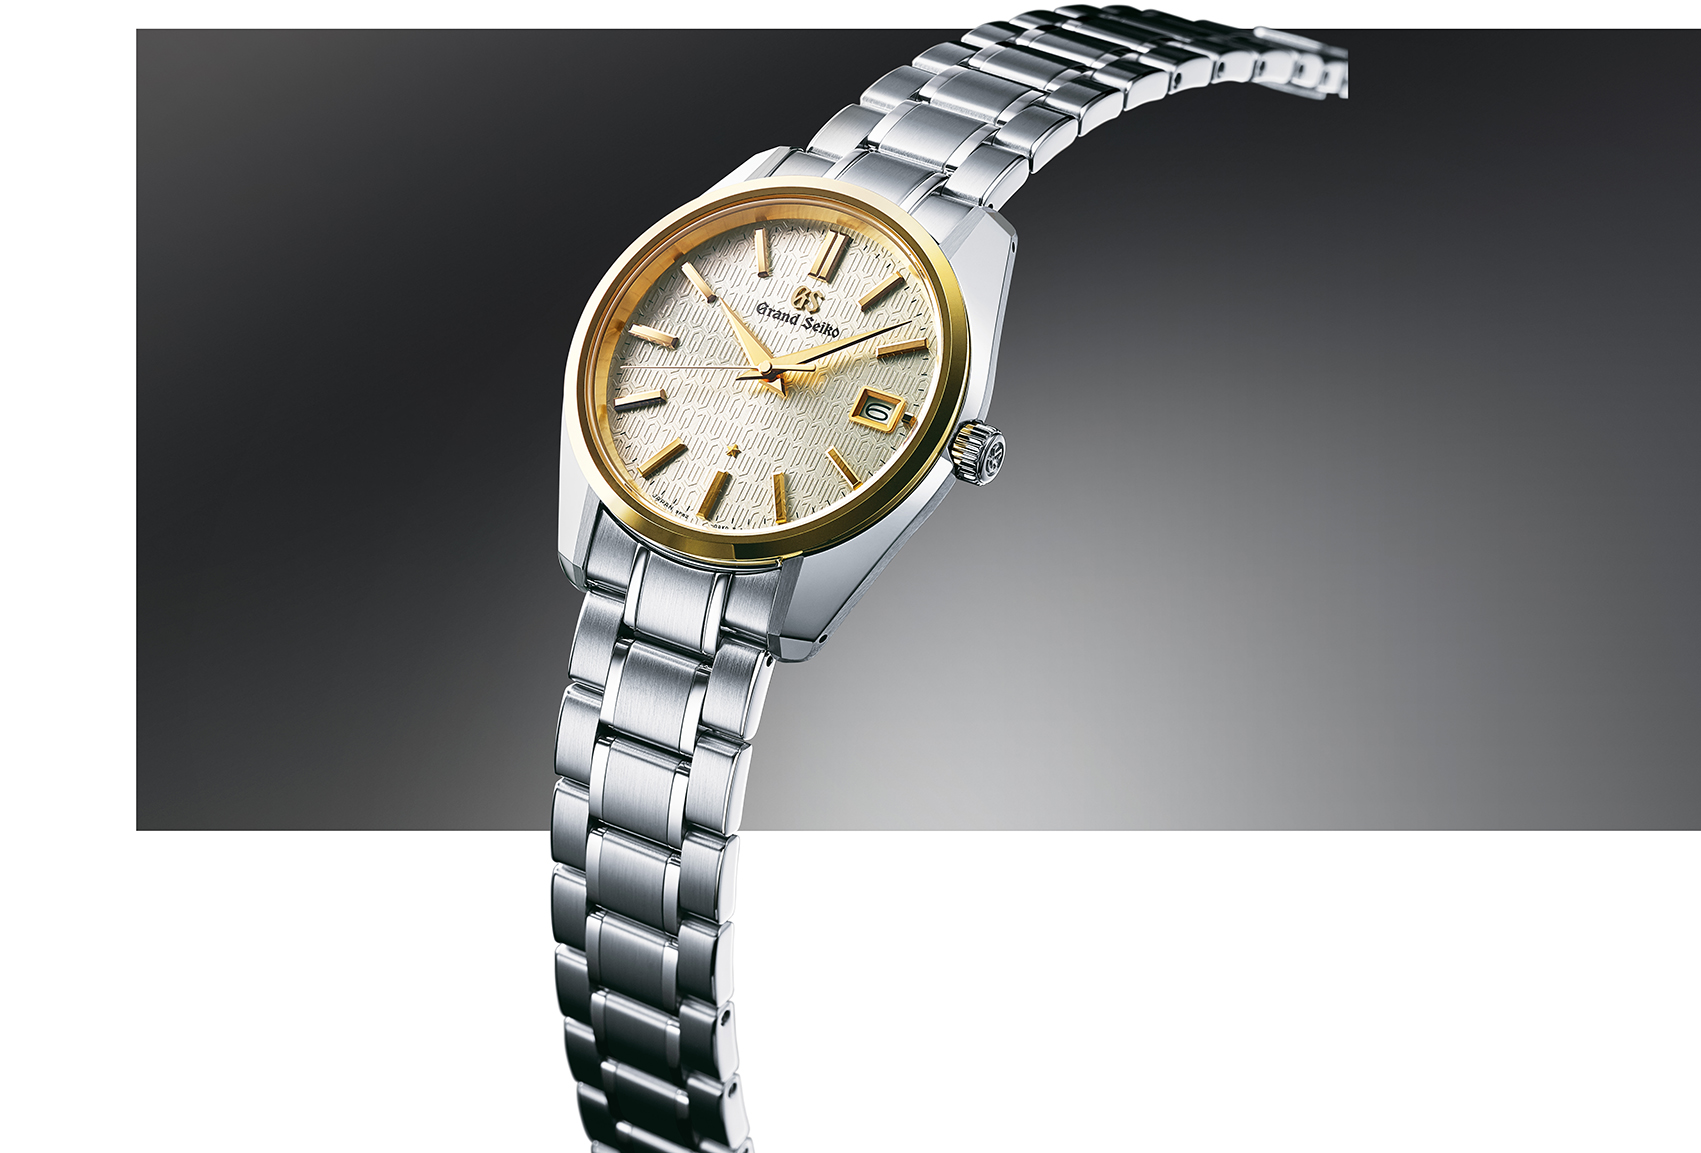 Grand Seiko Caliber 9F 25th Anniversary watch (model SBGV238)